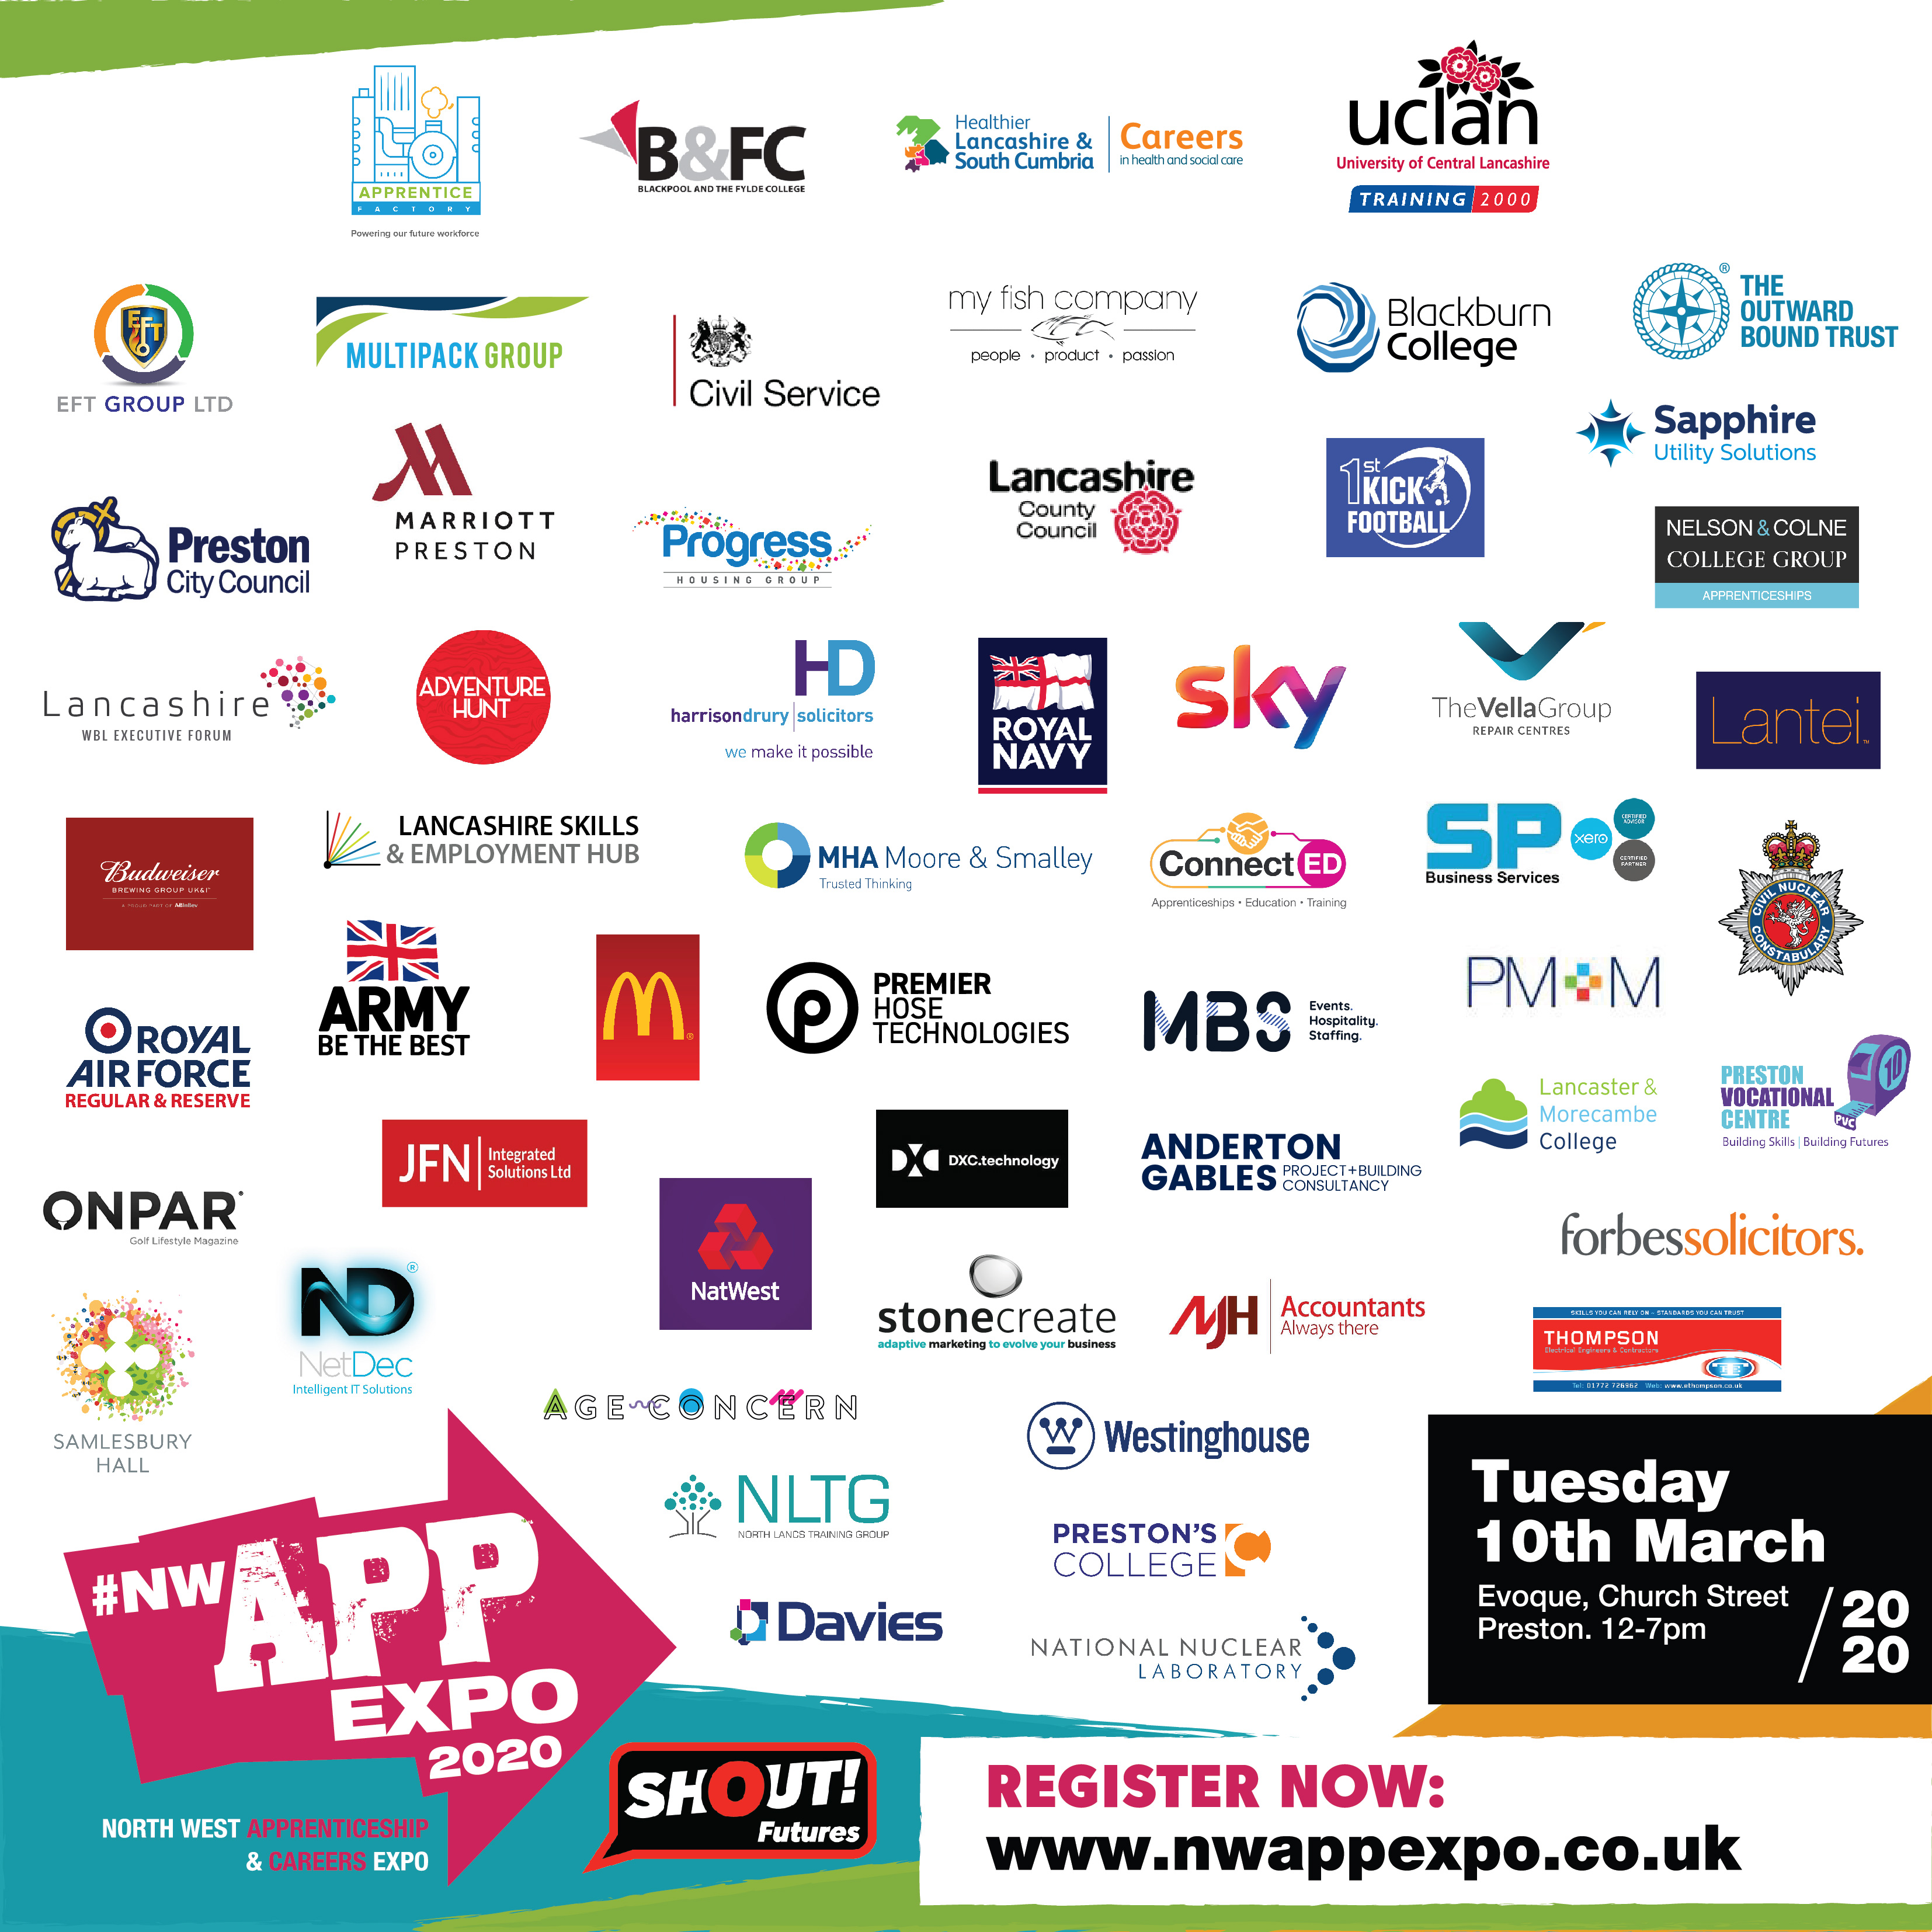 EFT Will Be At The Lancs Apprentice Expo Next Week – 10th March 2020